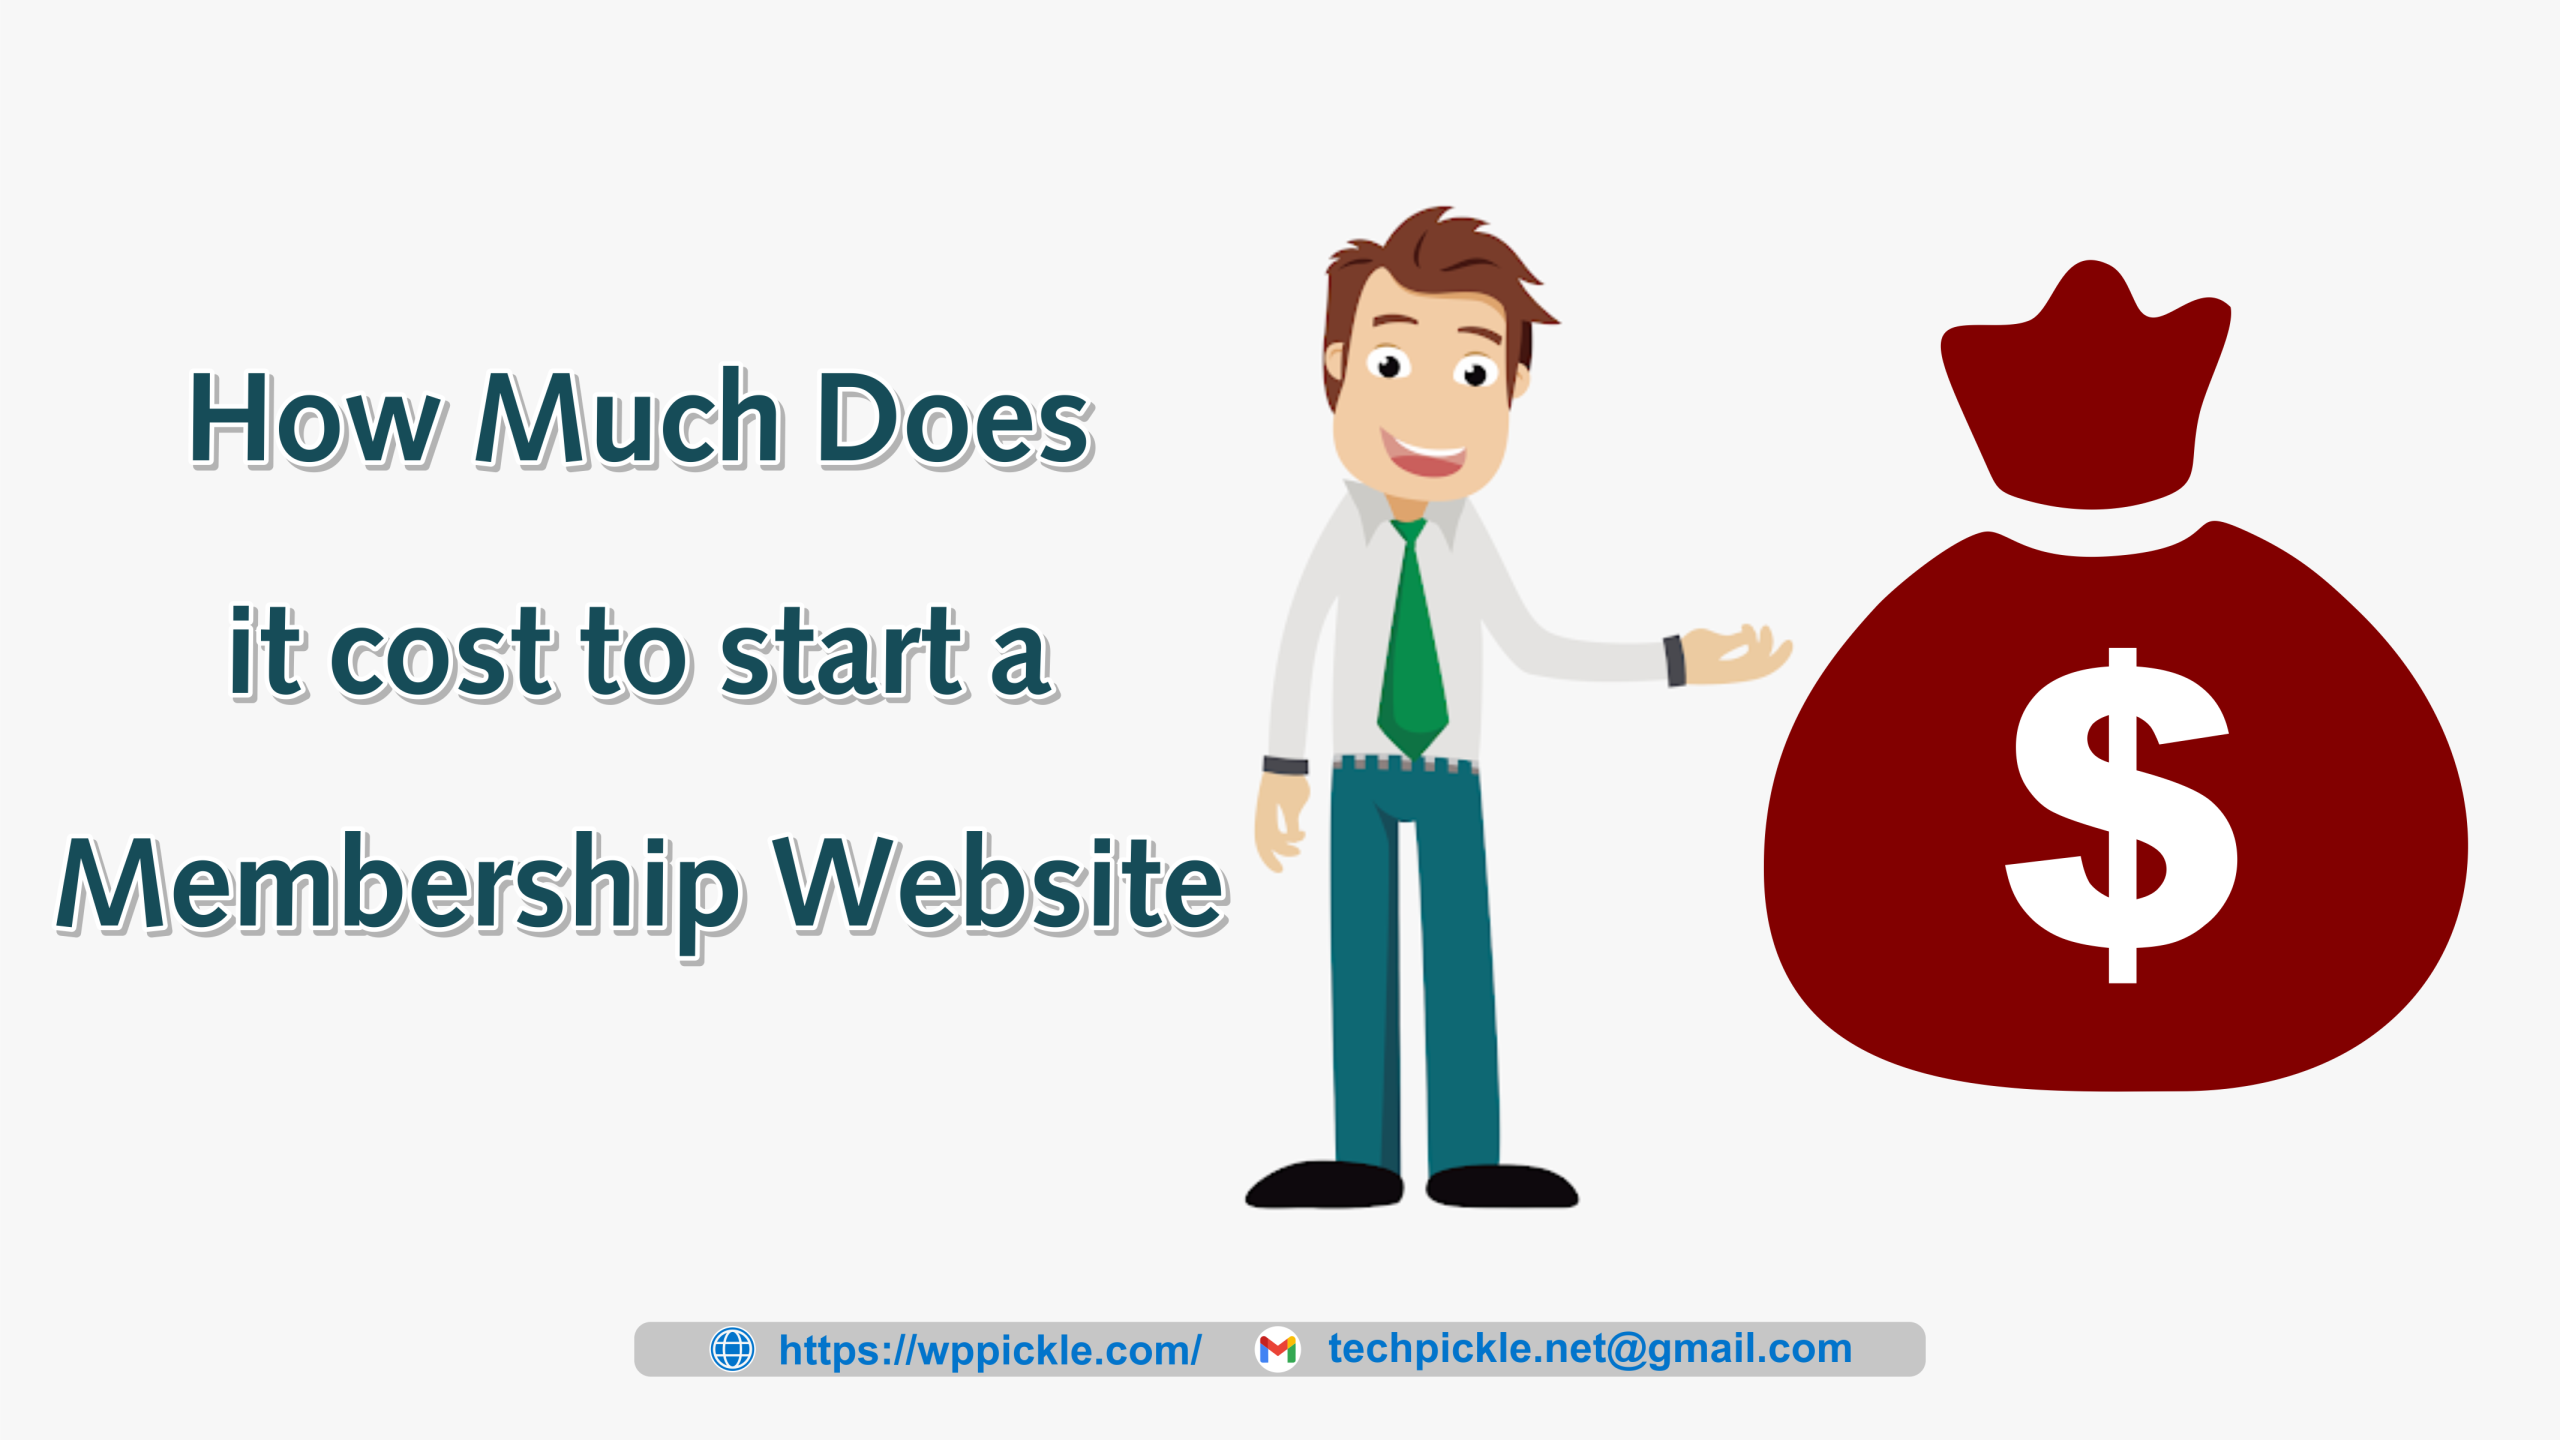 How Much Does a Membership Website Cost to Start?